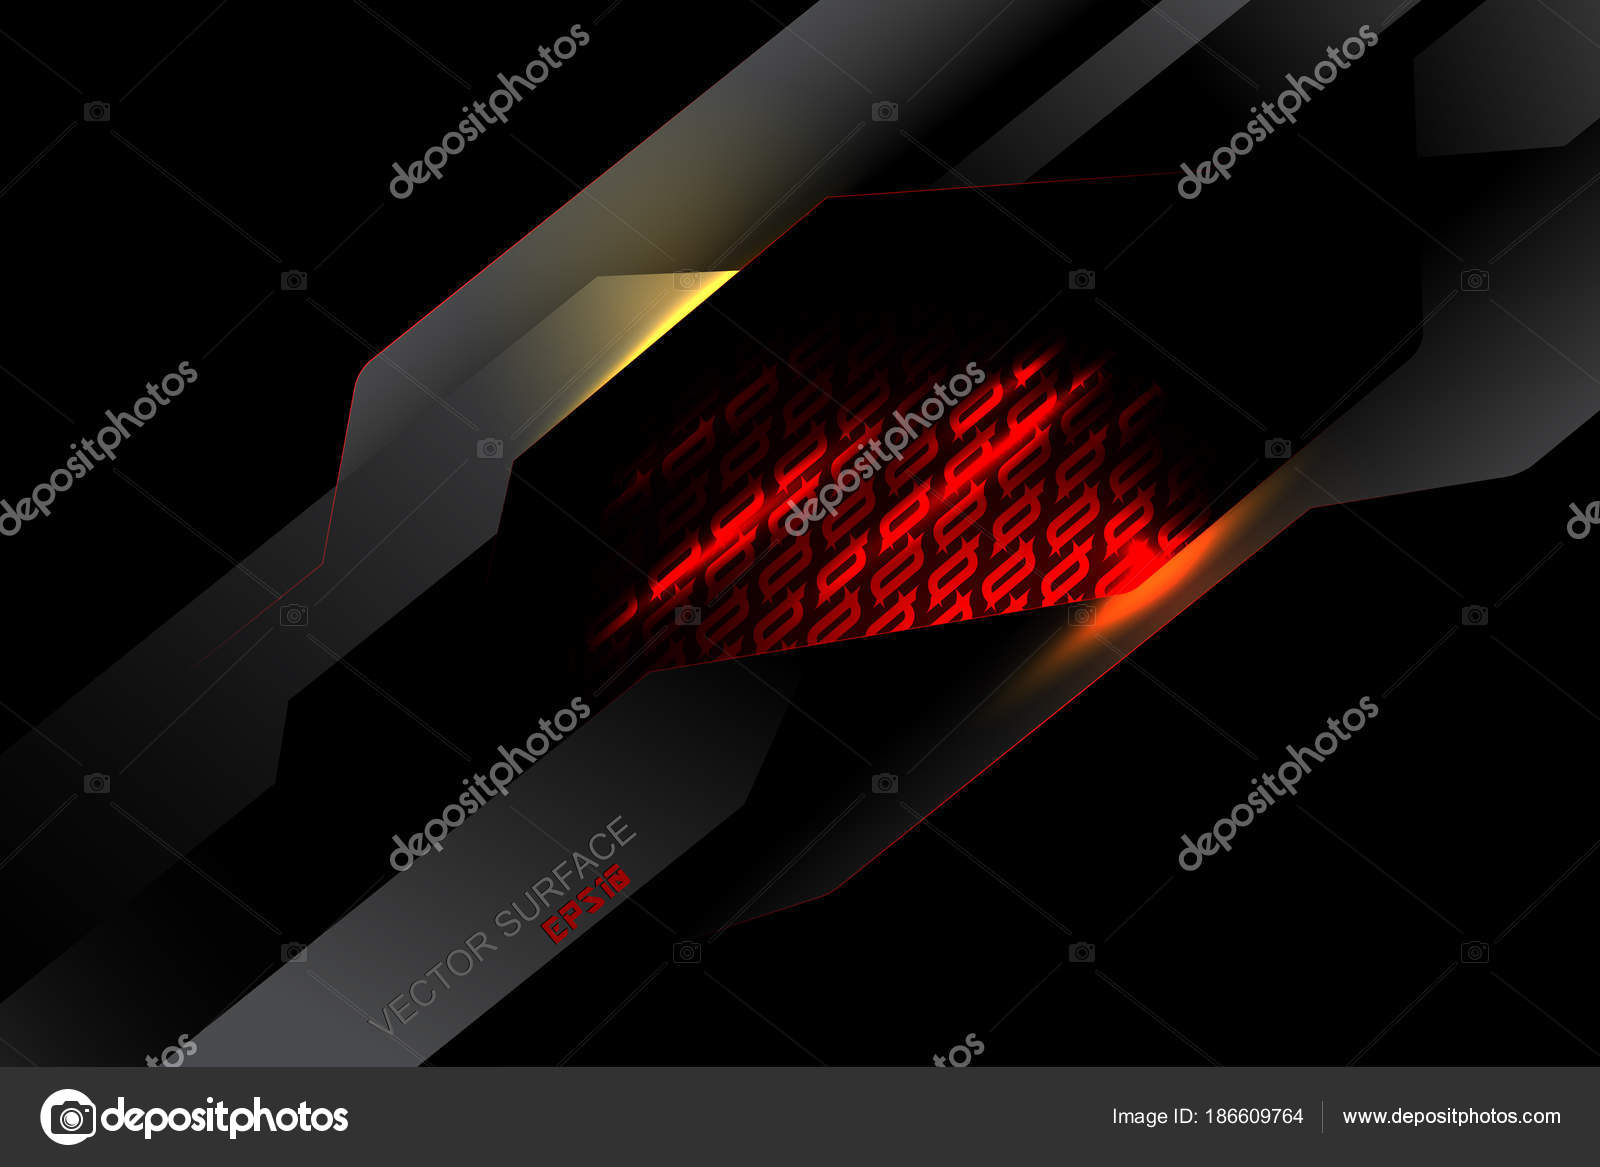 Wallpapers Light Red Red Light Metal Surface Dark Scene